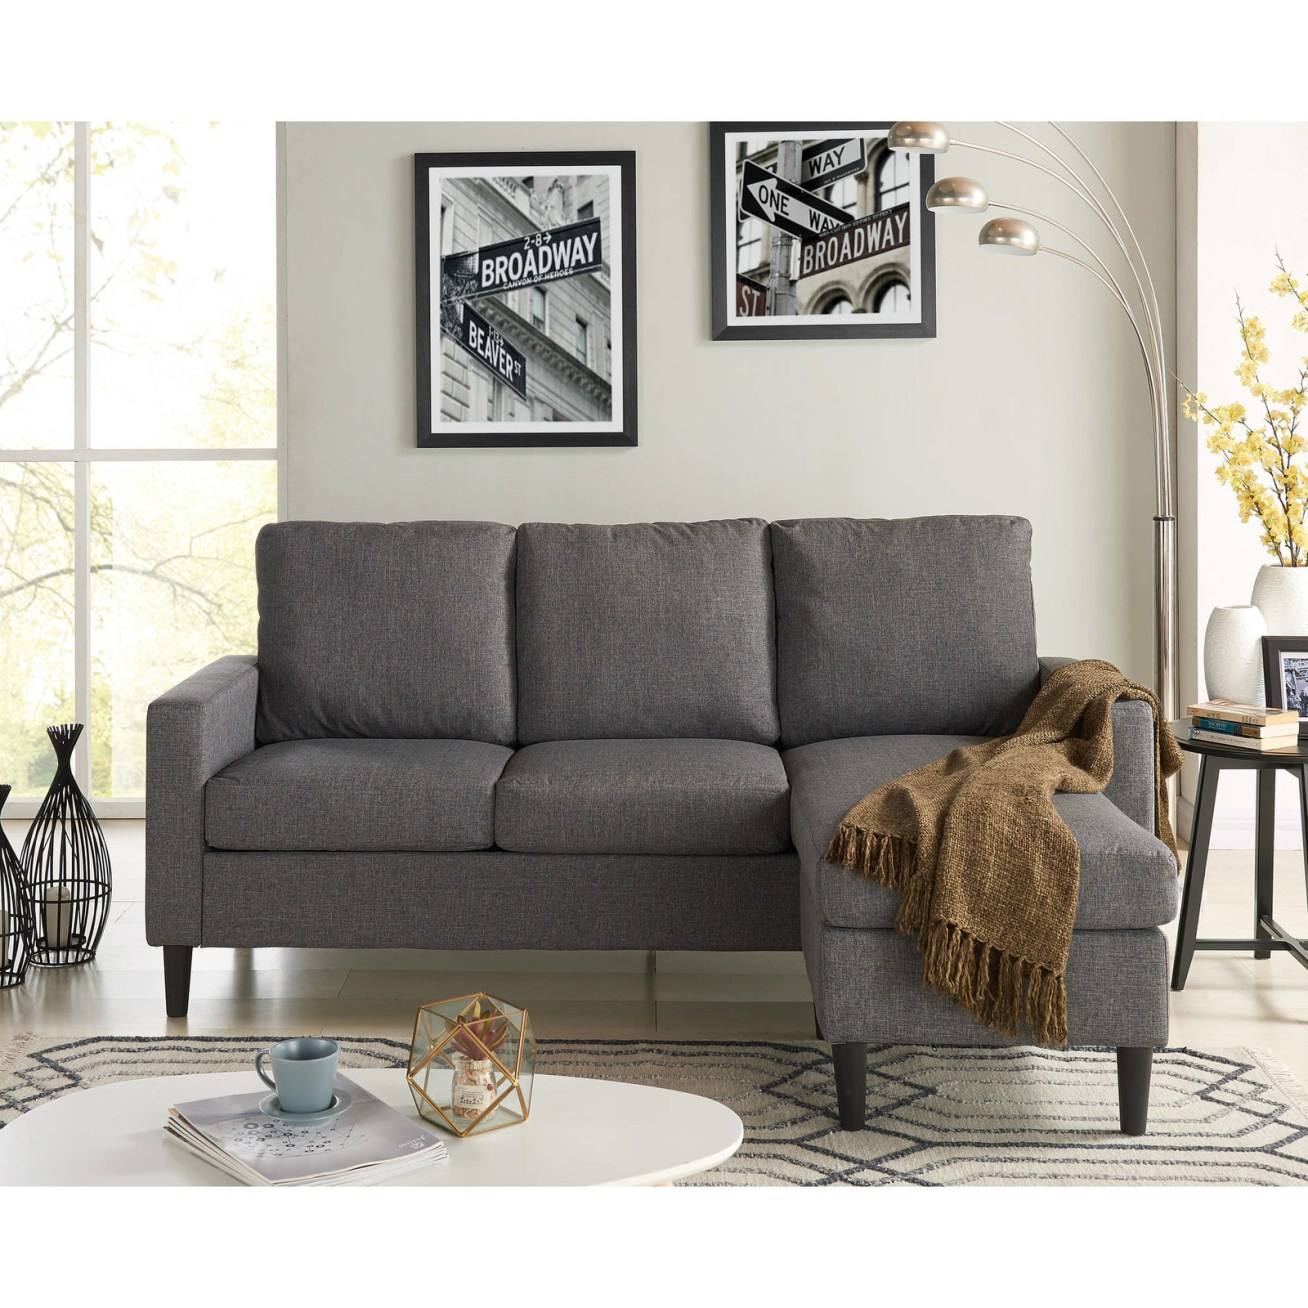 "Promising review: ""I love my couch! I had it for two months. At first, it was a little uncomfortable like an office couch but after awhile it starts to break in. It's the perfect size for a 400 square feet studio apartment. I wanted something small but with a lot of seating and I got it with this perfect little sectional. If you're just starting out I would recommend it because it's affordable, trendy and with some accent pillows you can achieve that comfort you need to relax."" —MariahPrice: 9"